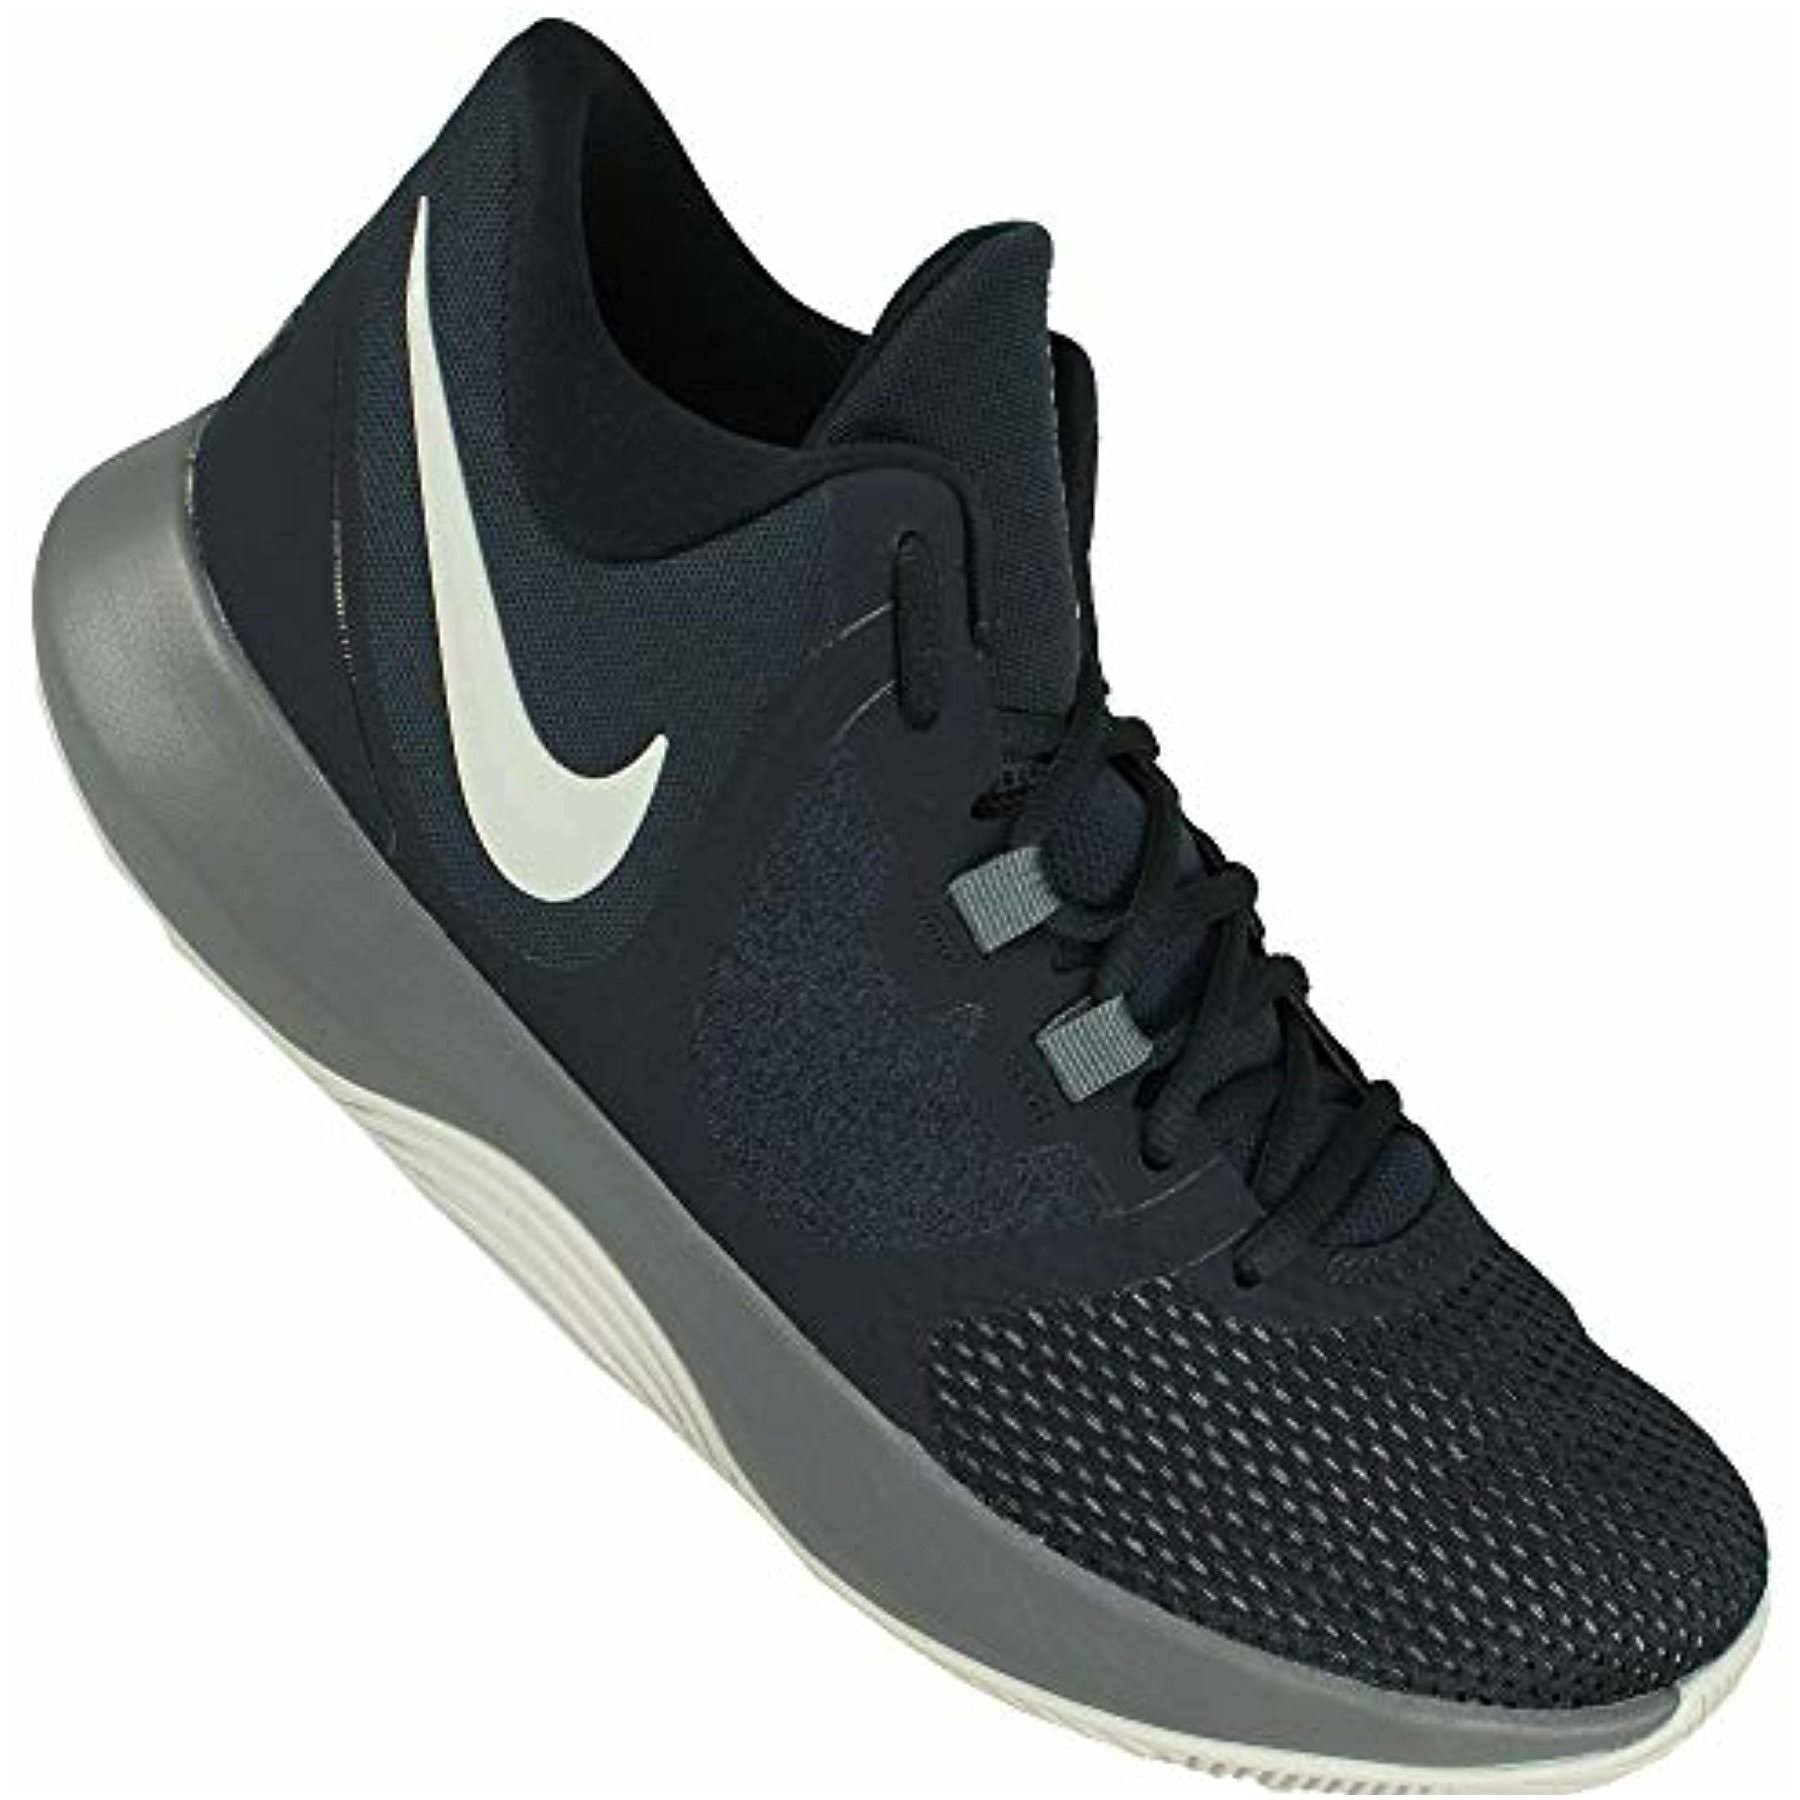 Basketbalsok Nike Precision Ii Air voor Obsidiaan heren 76byfgY